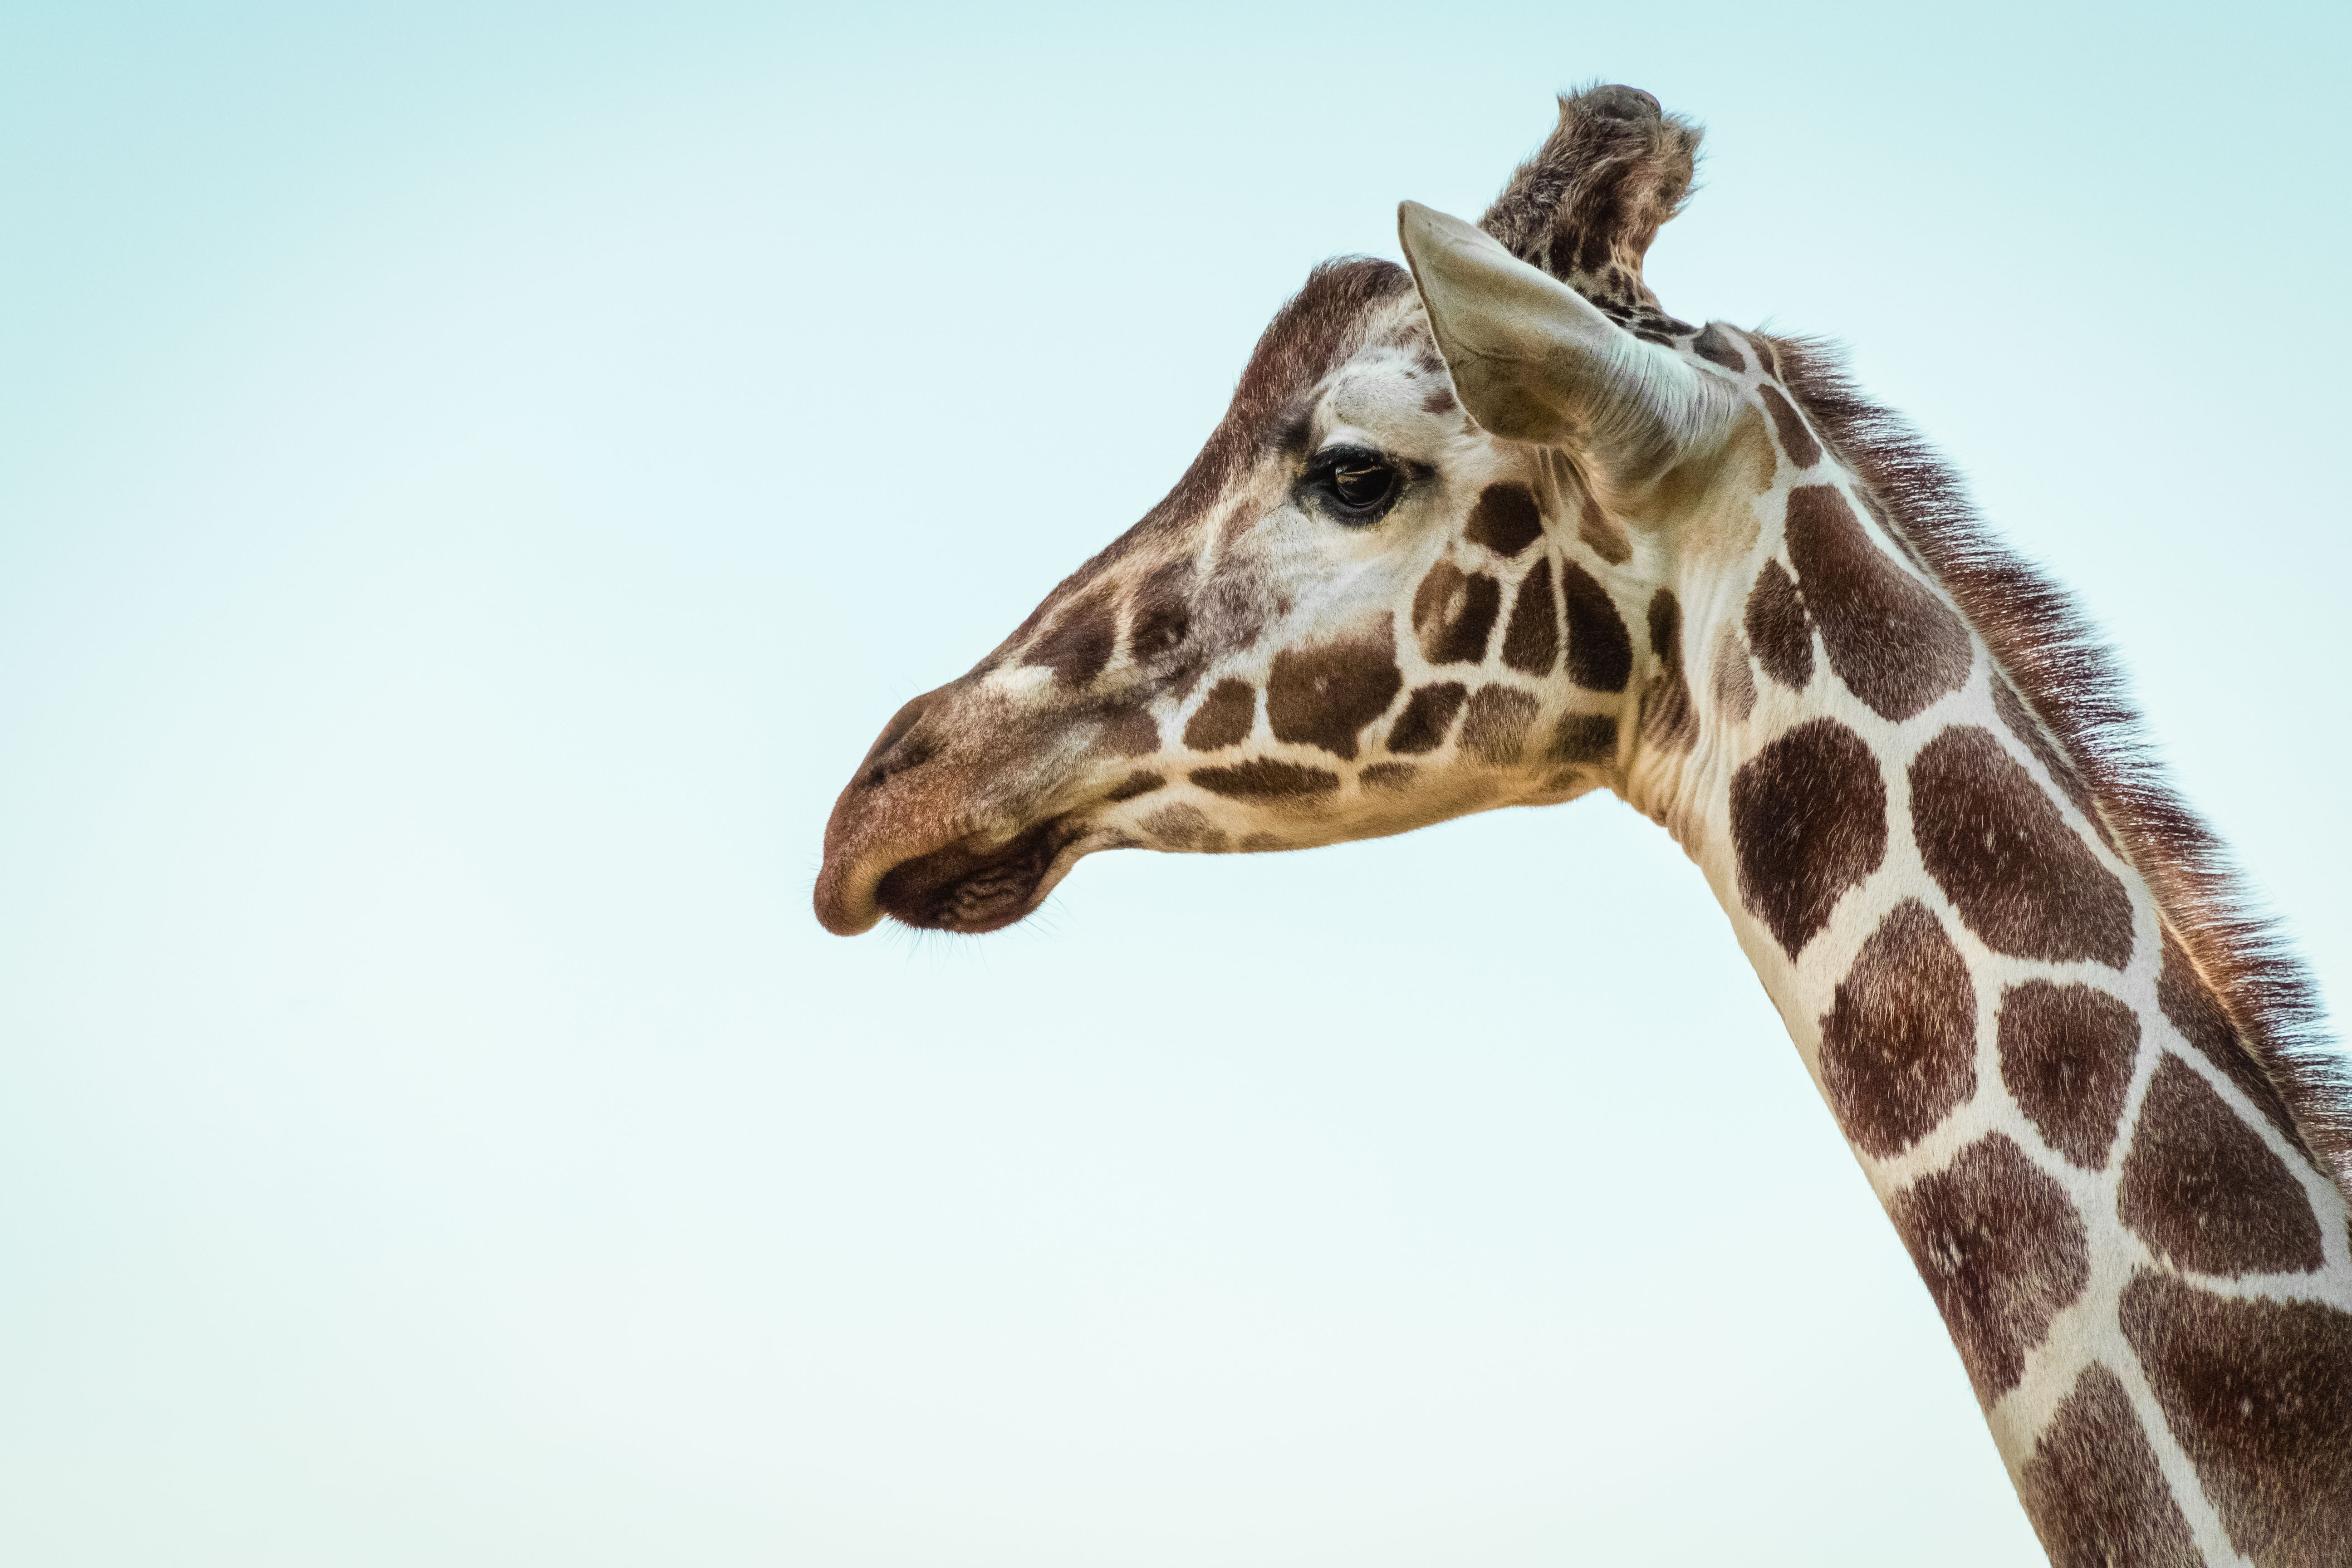 photo of a giraffe